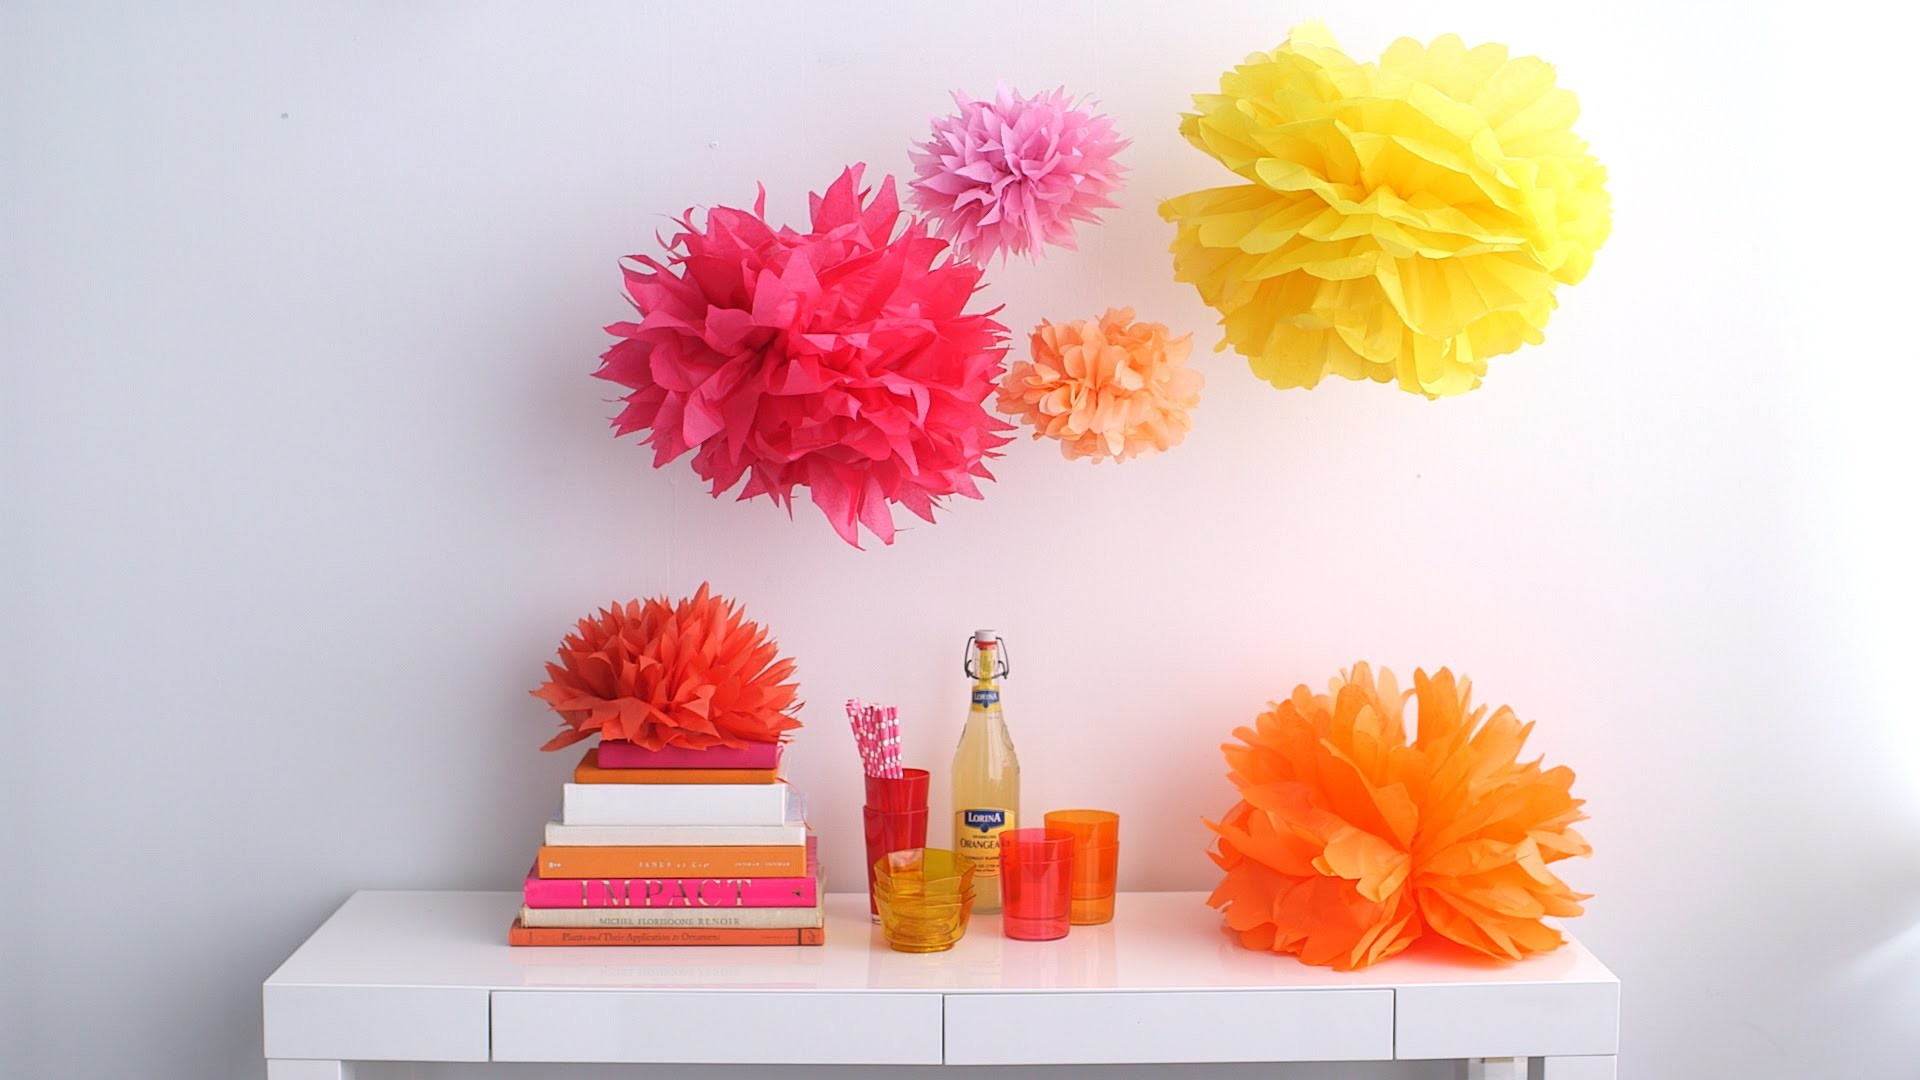 how to make tissue paper pom poms thoughtfully simple - HD1920×1080